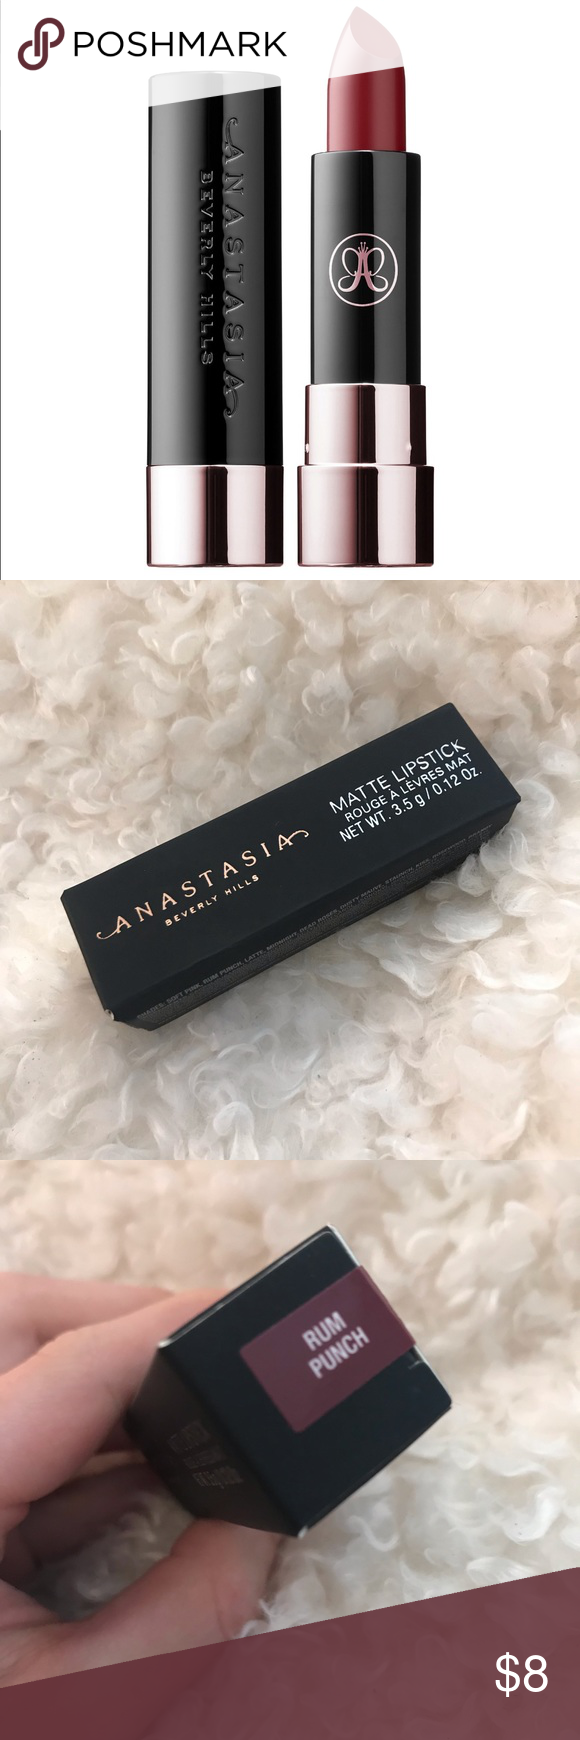 Anastasia Beverly Hills Matte Lipstick Rum Punch New In Box Completely Unused And Perfect Condition Anastasia Beverly Hills Lipstick Anastasia Beverly